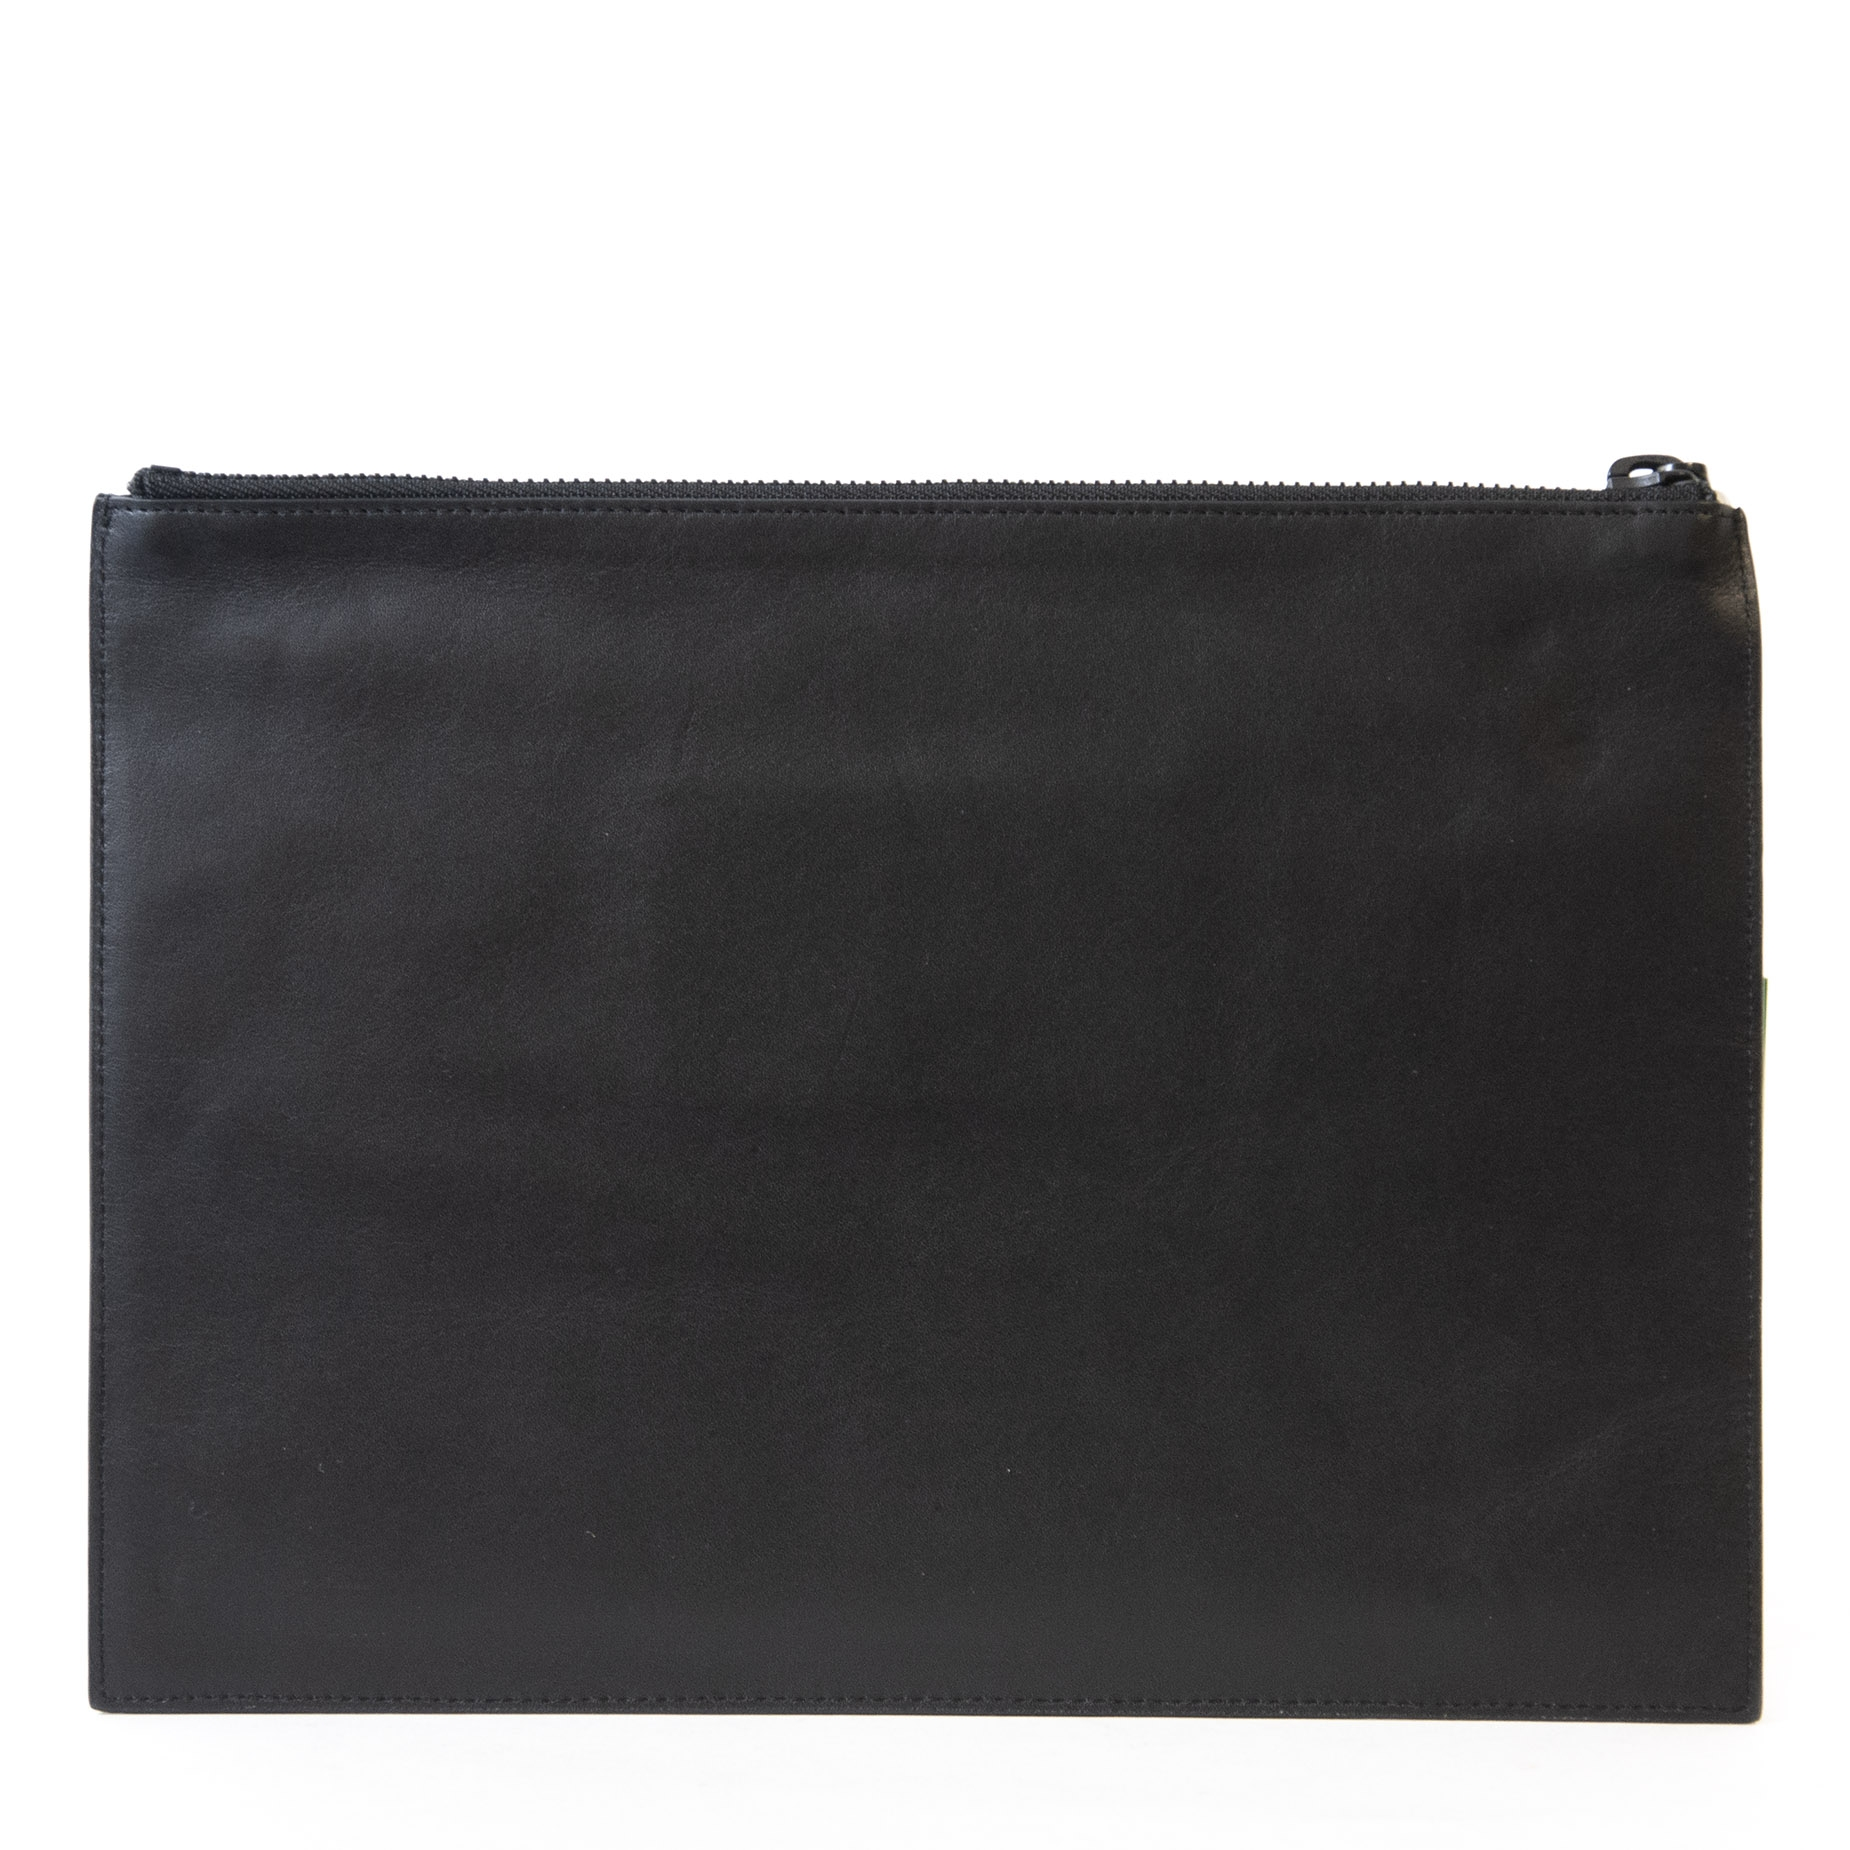 Authentique seconde main Kenzo Black Letters Pouch achète en ligne webshop LabelLOV